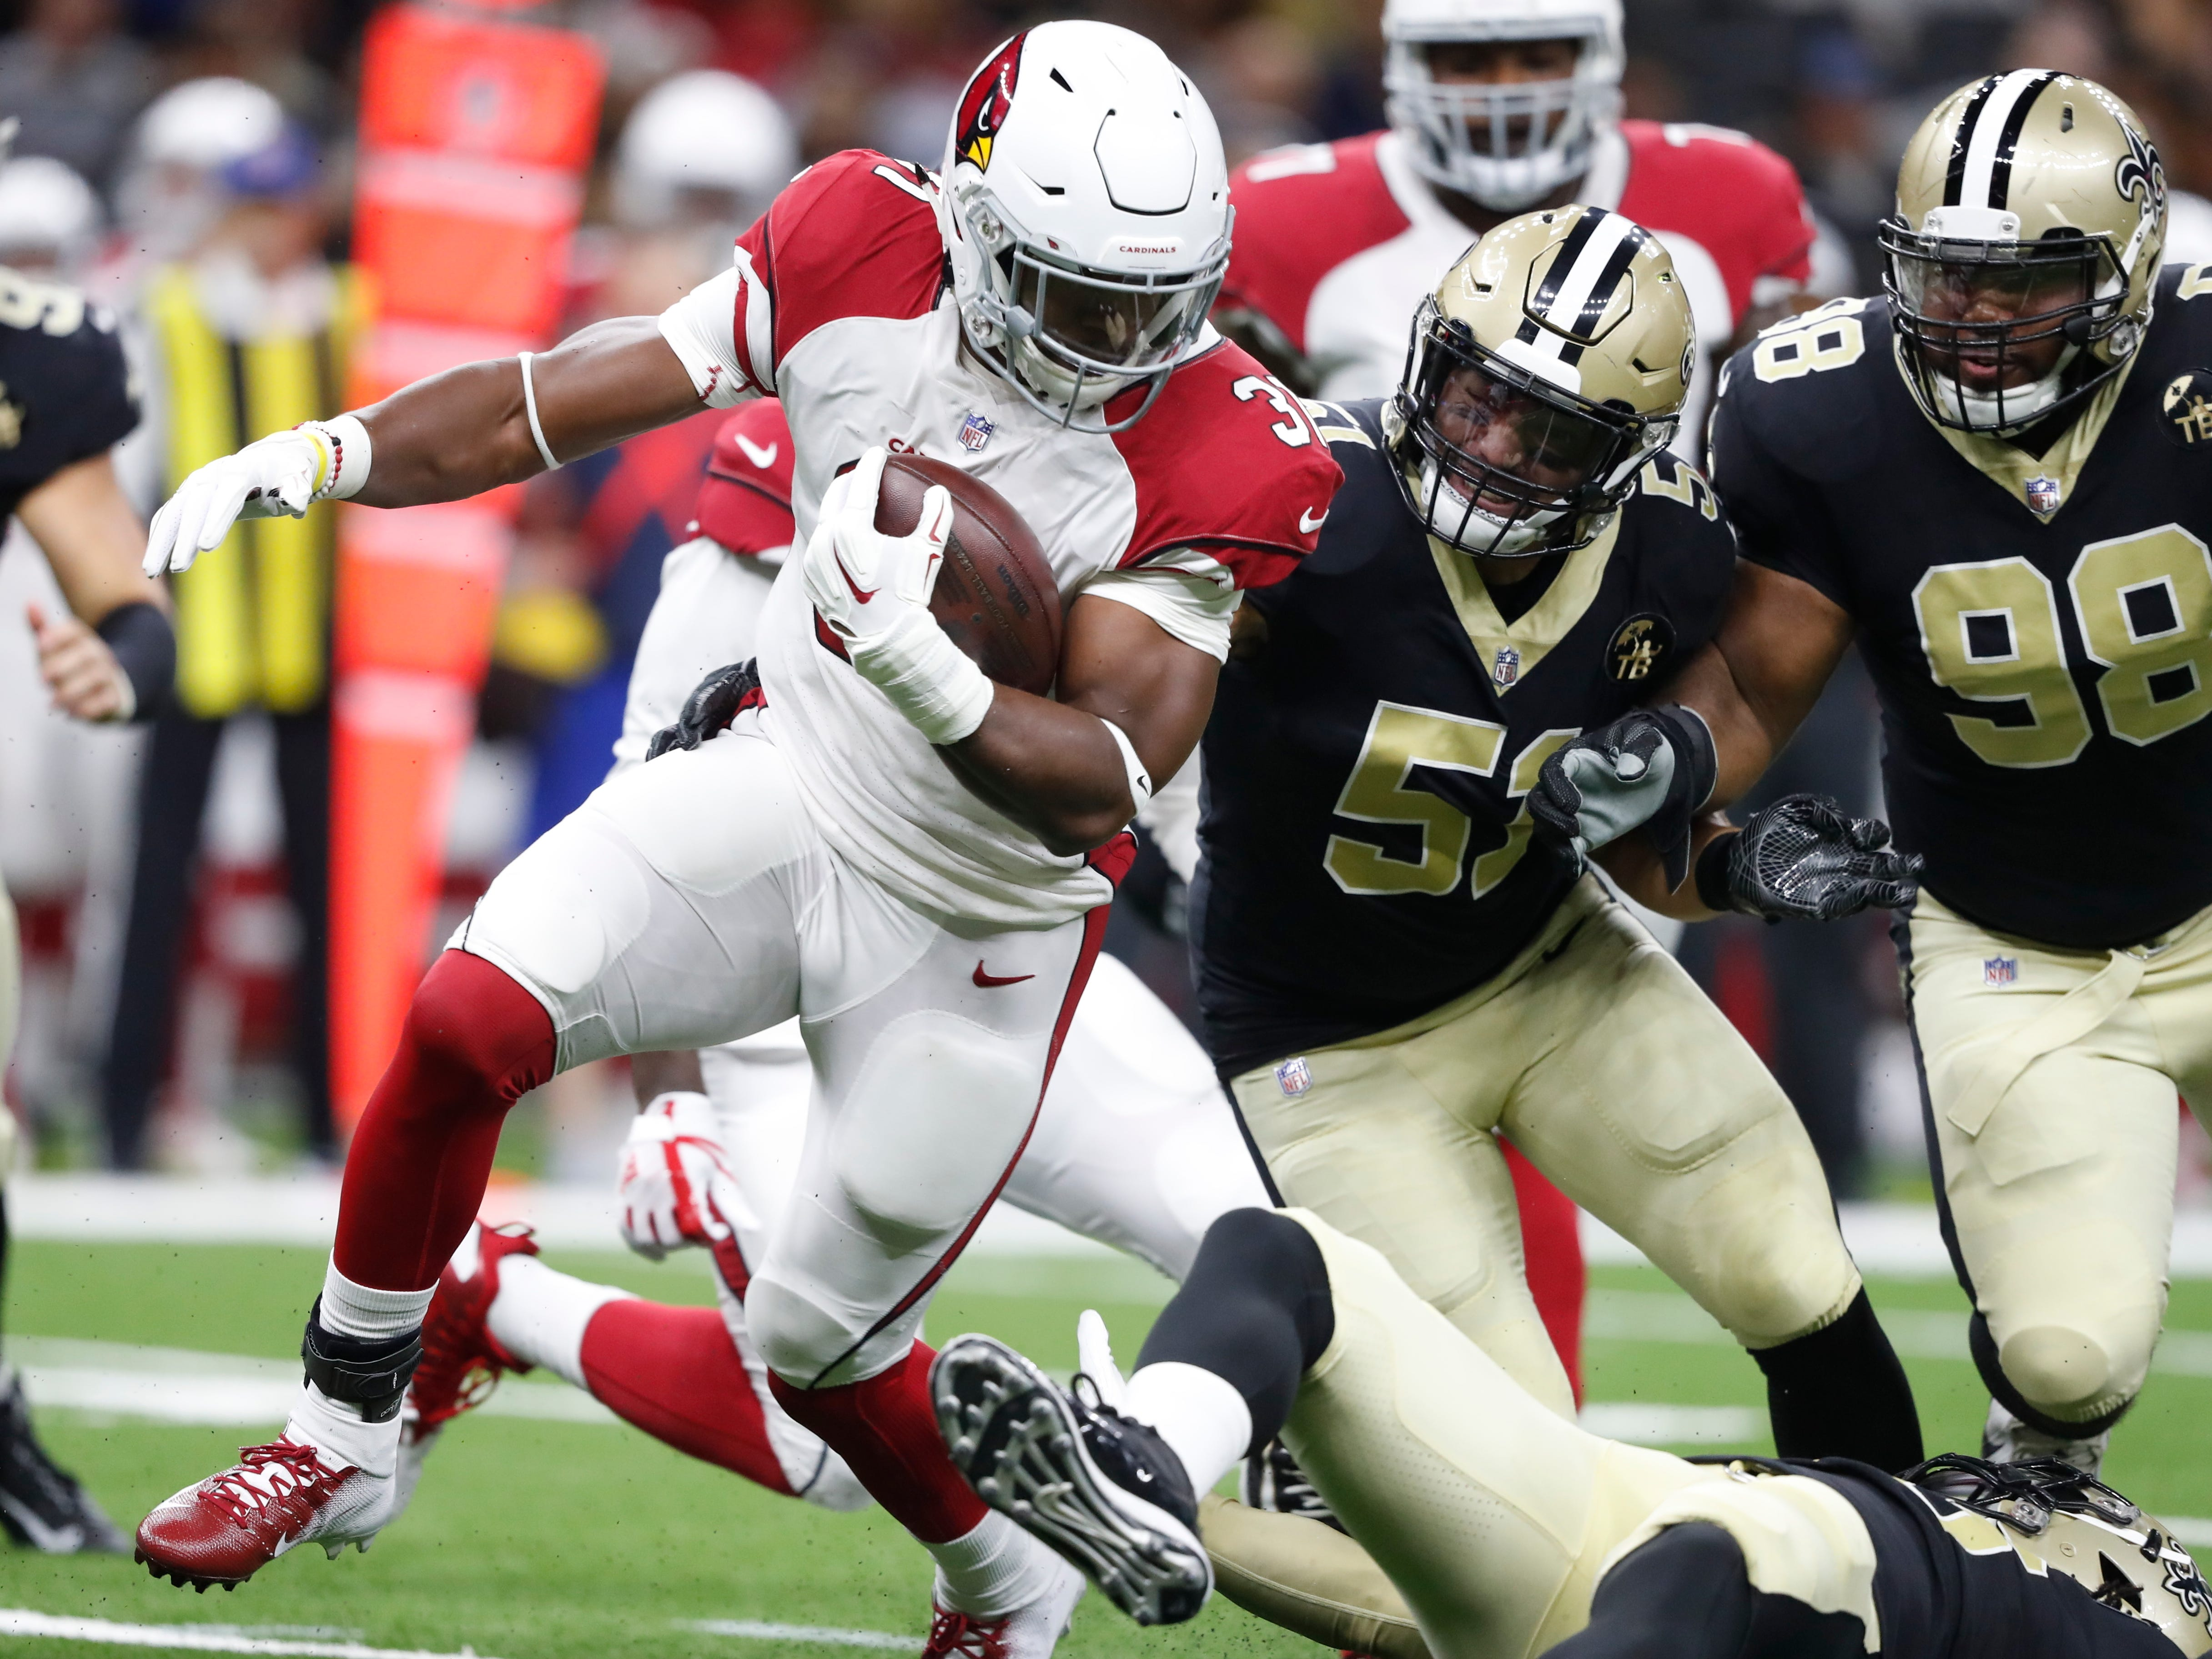 Arizona Cardinals running back David Johnson (31) carries against New Orleans Saints linebacker Manti Te'o in the first half of an NFL preseason football game in New Orleans, Friday, Aug. 17, 2018.